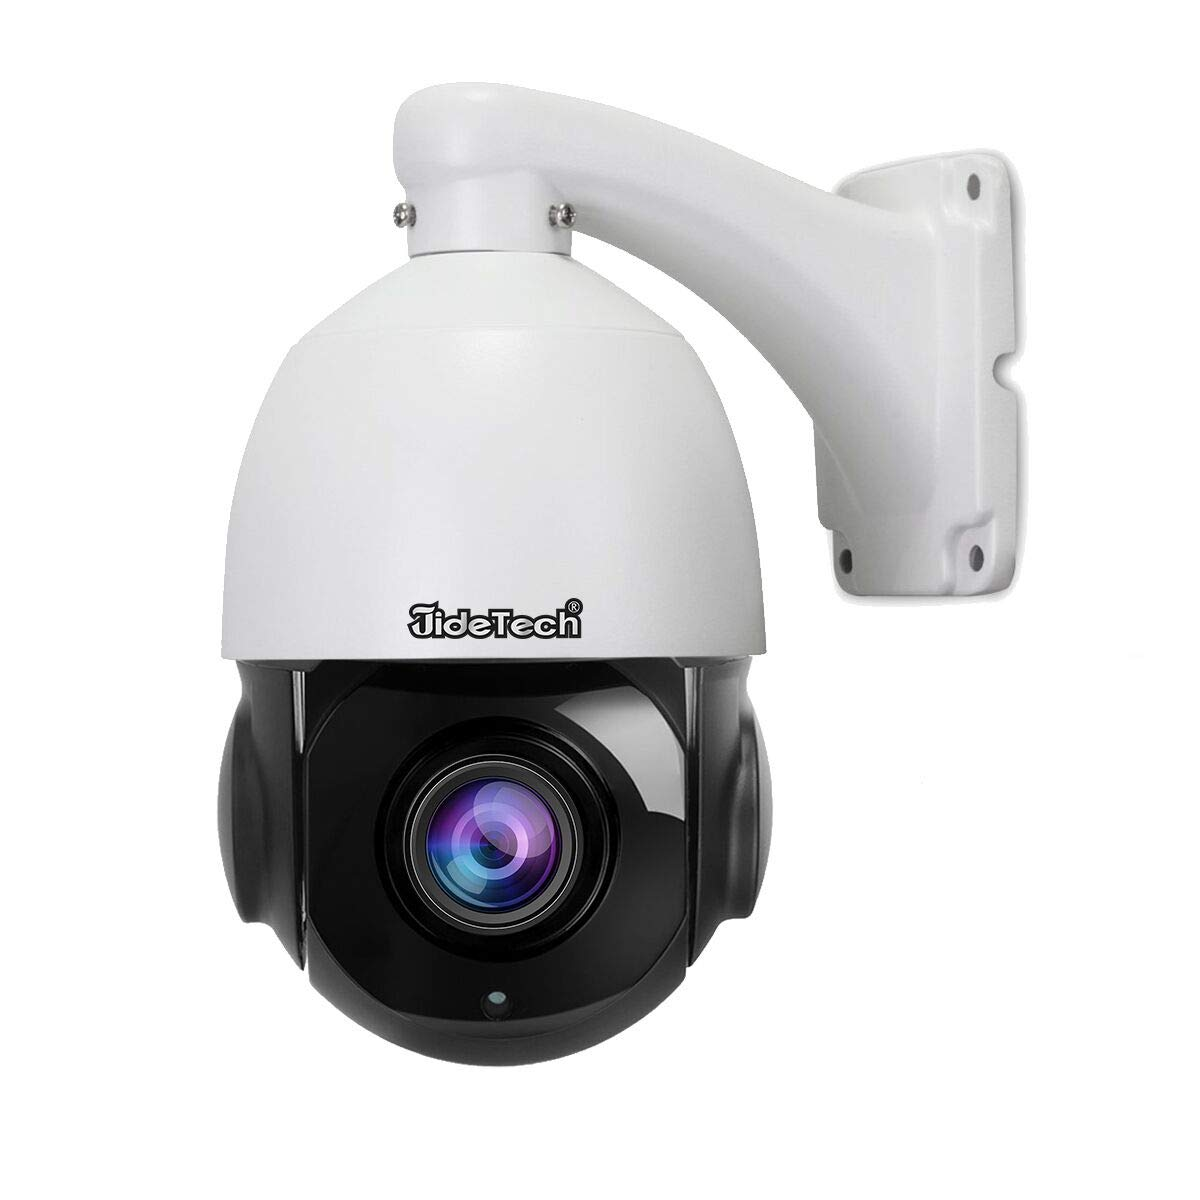 High Speed 5MP Smart 265 PTZ POE IP Security Dome Camera with 20X Optical Zoom Pan Tilt and Waterproof IR-Cut Night Vision for Indoor and Outdoor Security